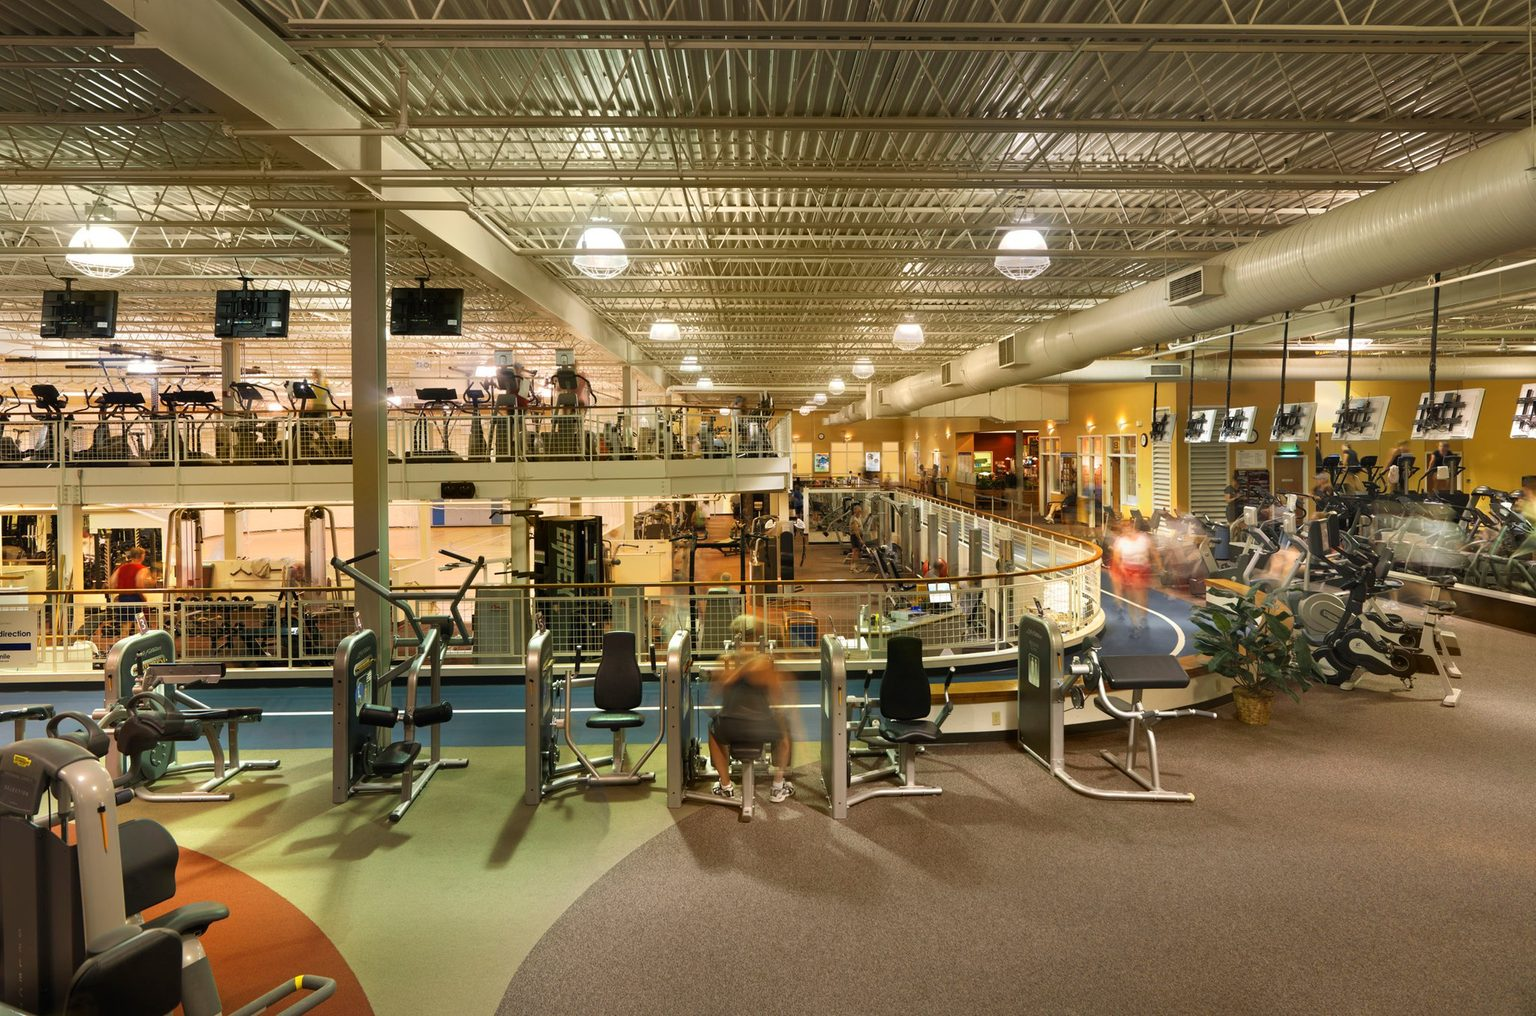 Photo from acac Fitness & Wellness Center - Adventure Central